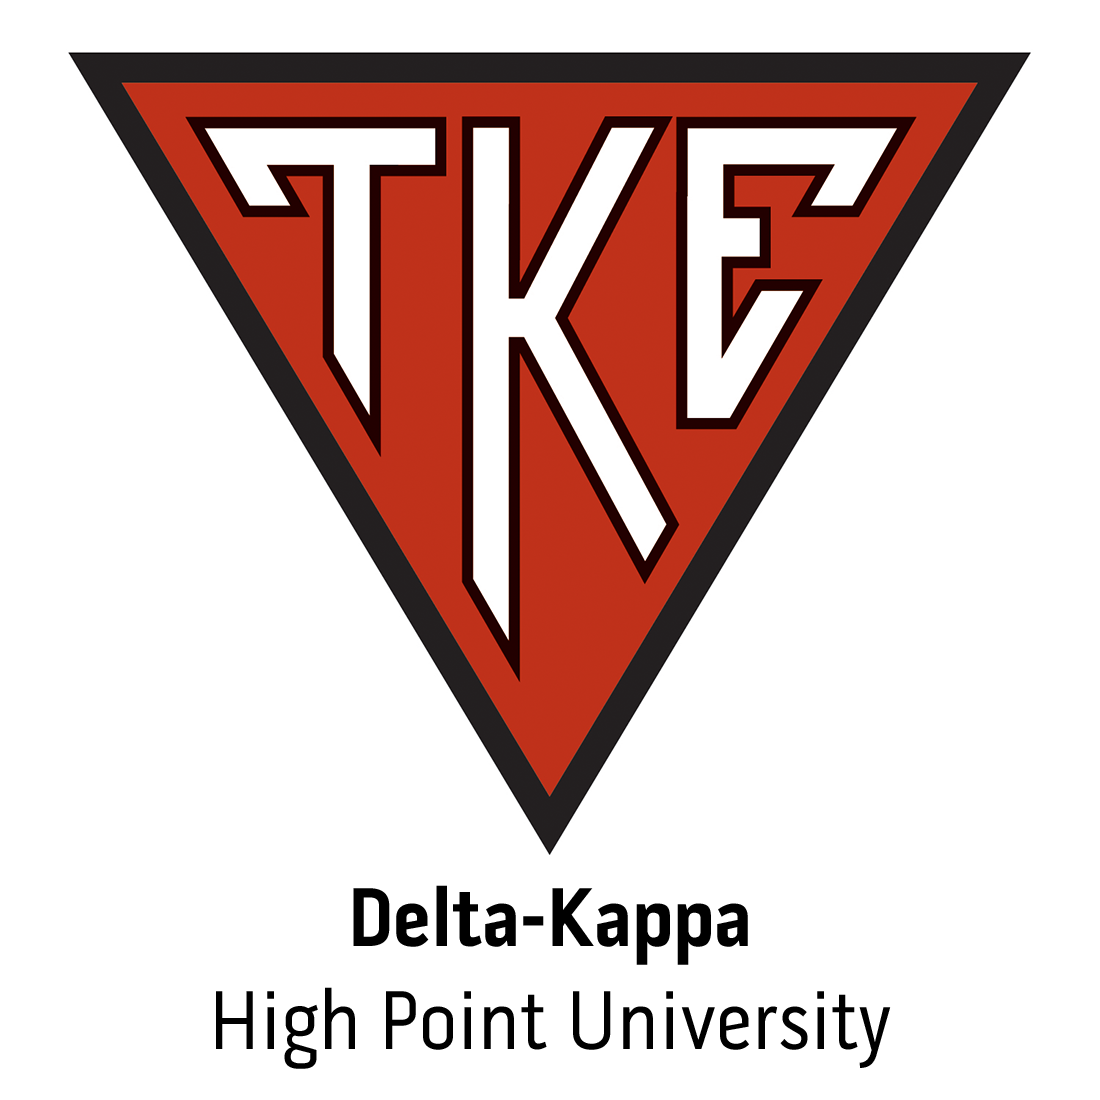 Delta-Kappa Chapter at High Point University